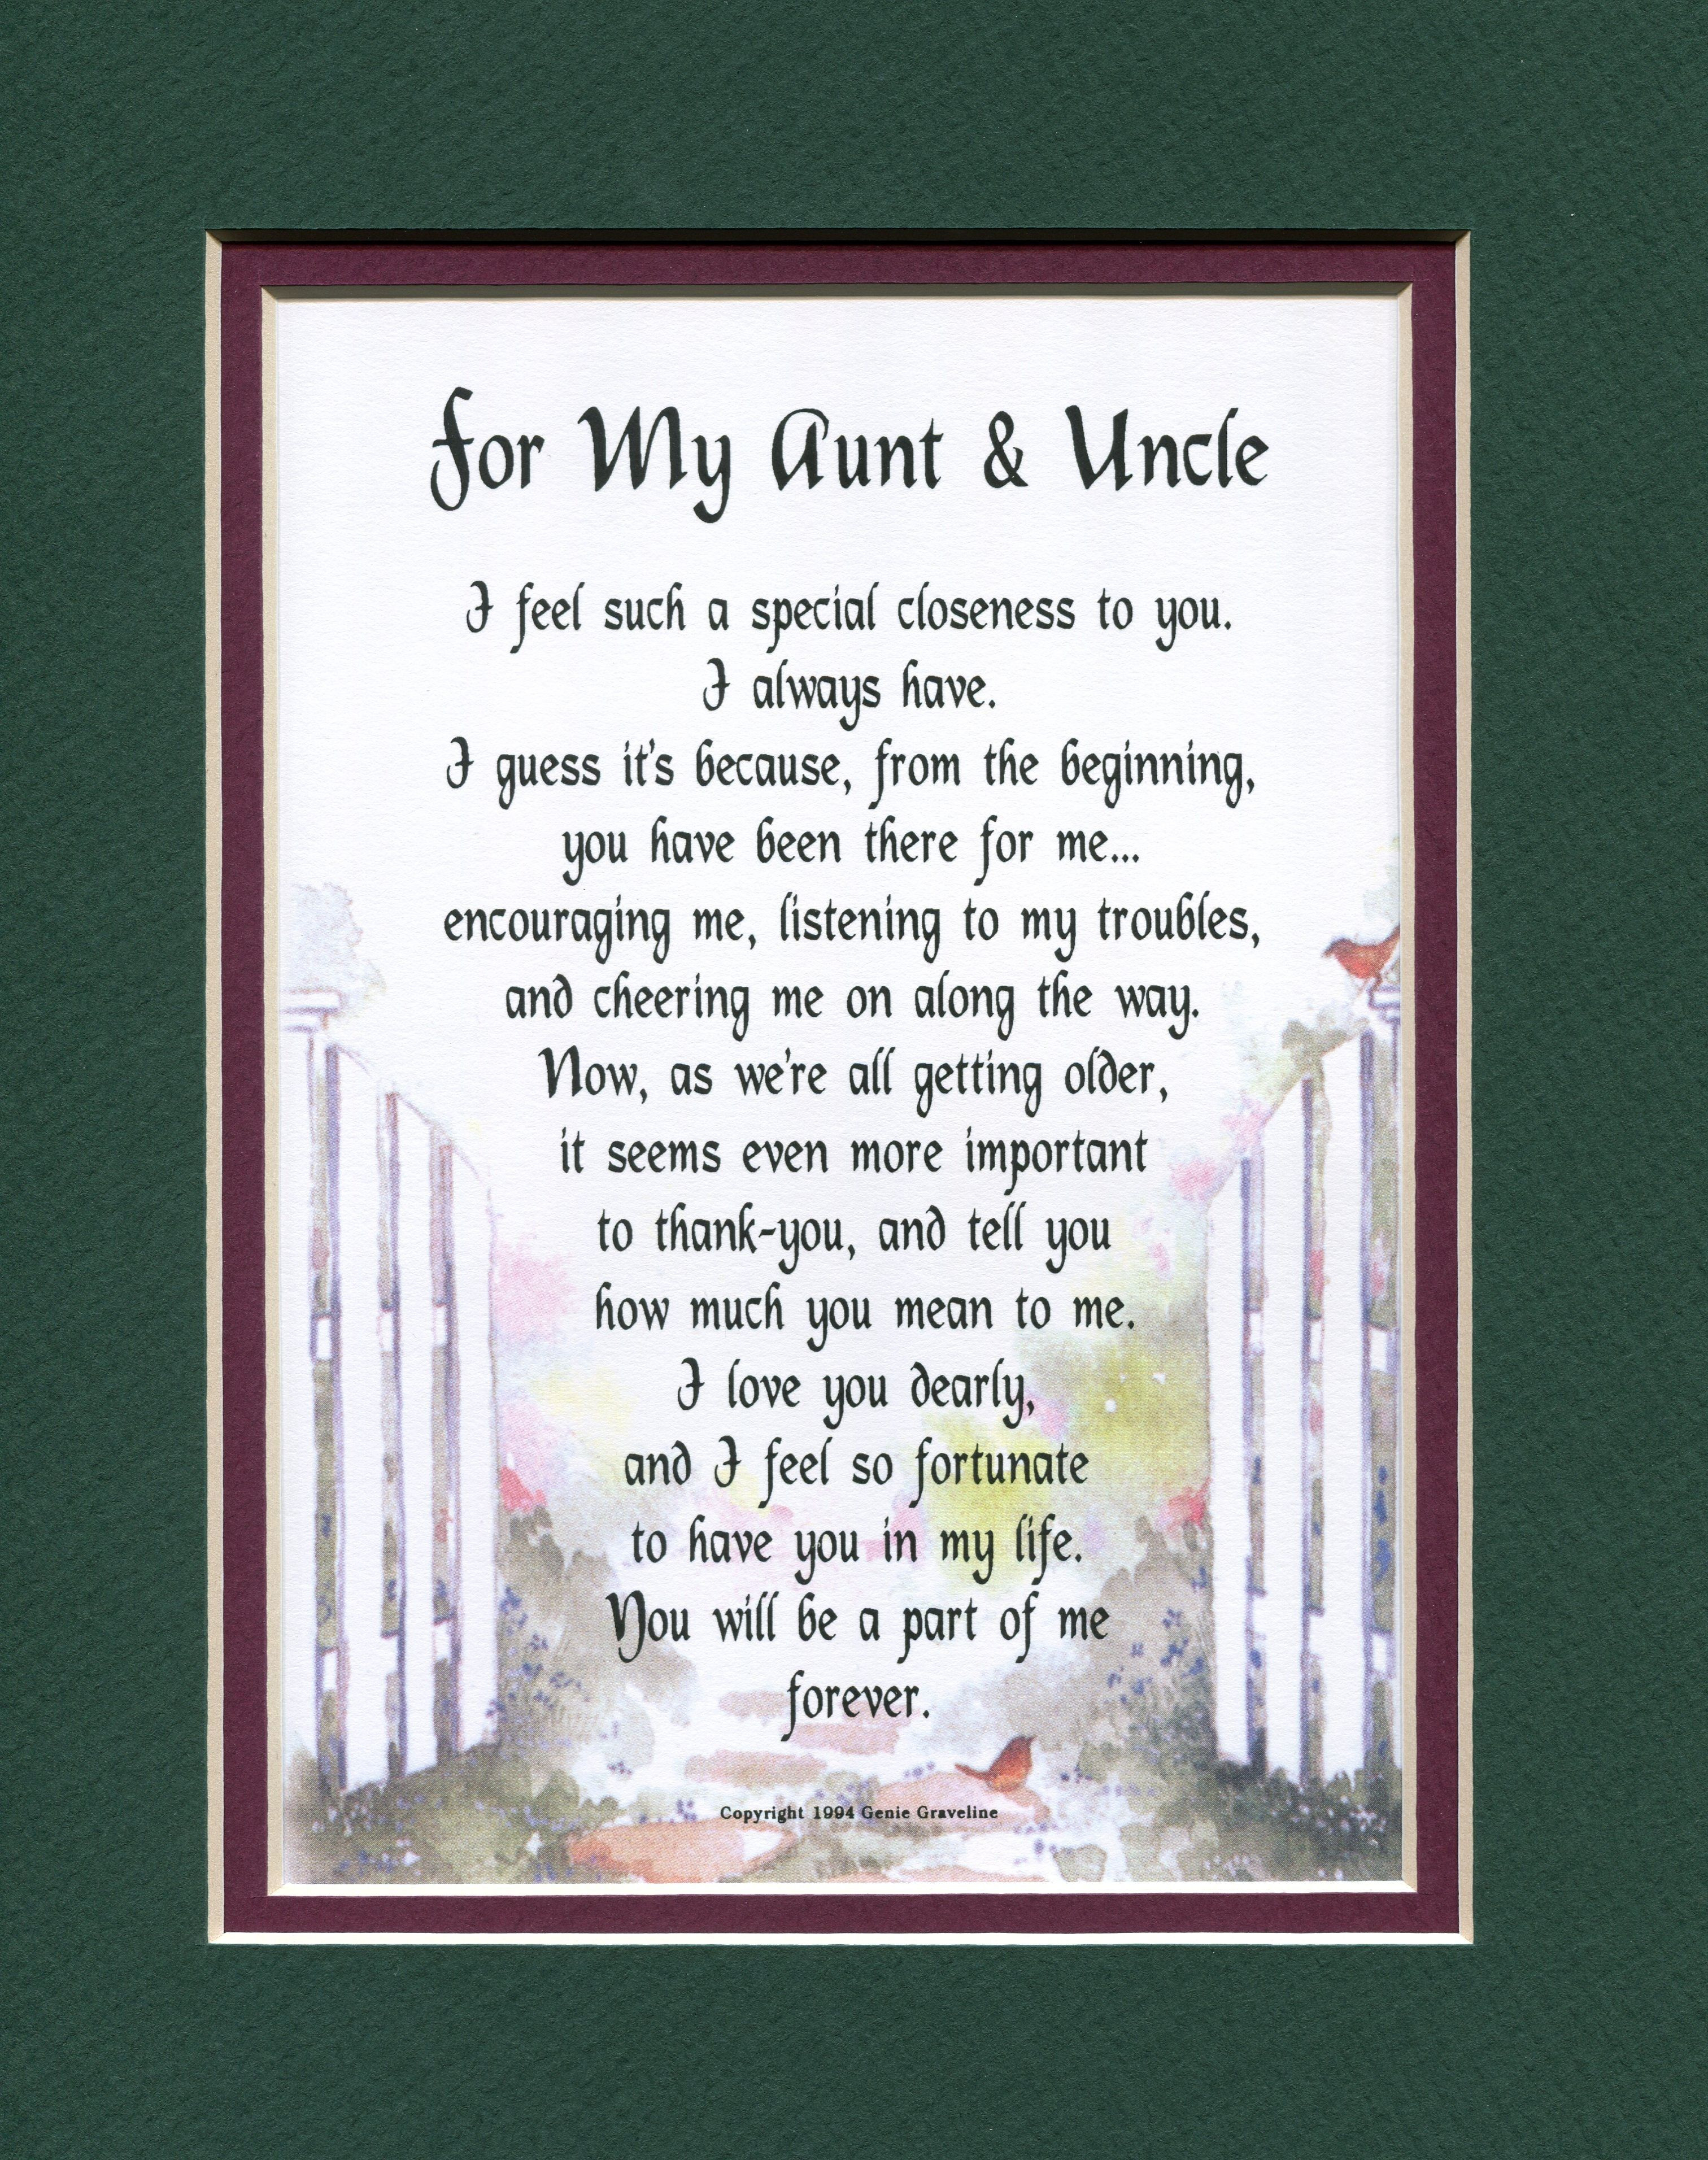 50Th Wedding Anniversary Gift Ideas For Aunt And Uncle  For My Aunt & Uncle